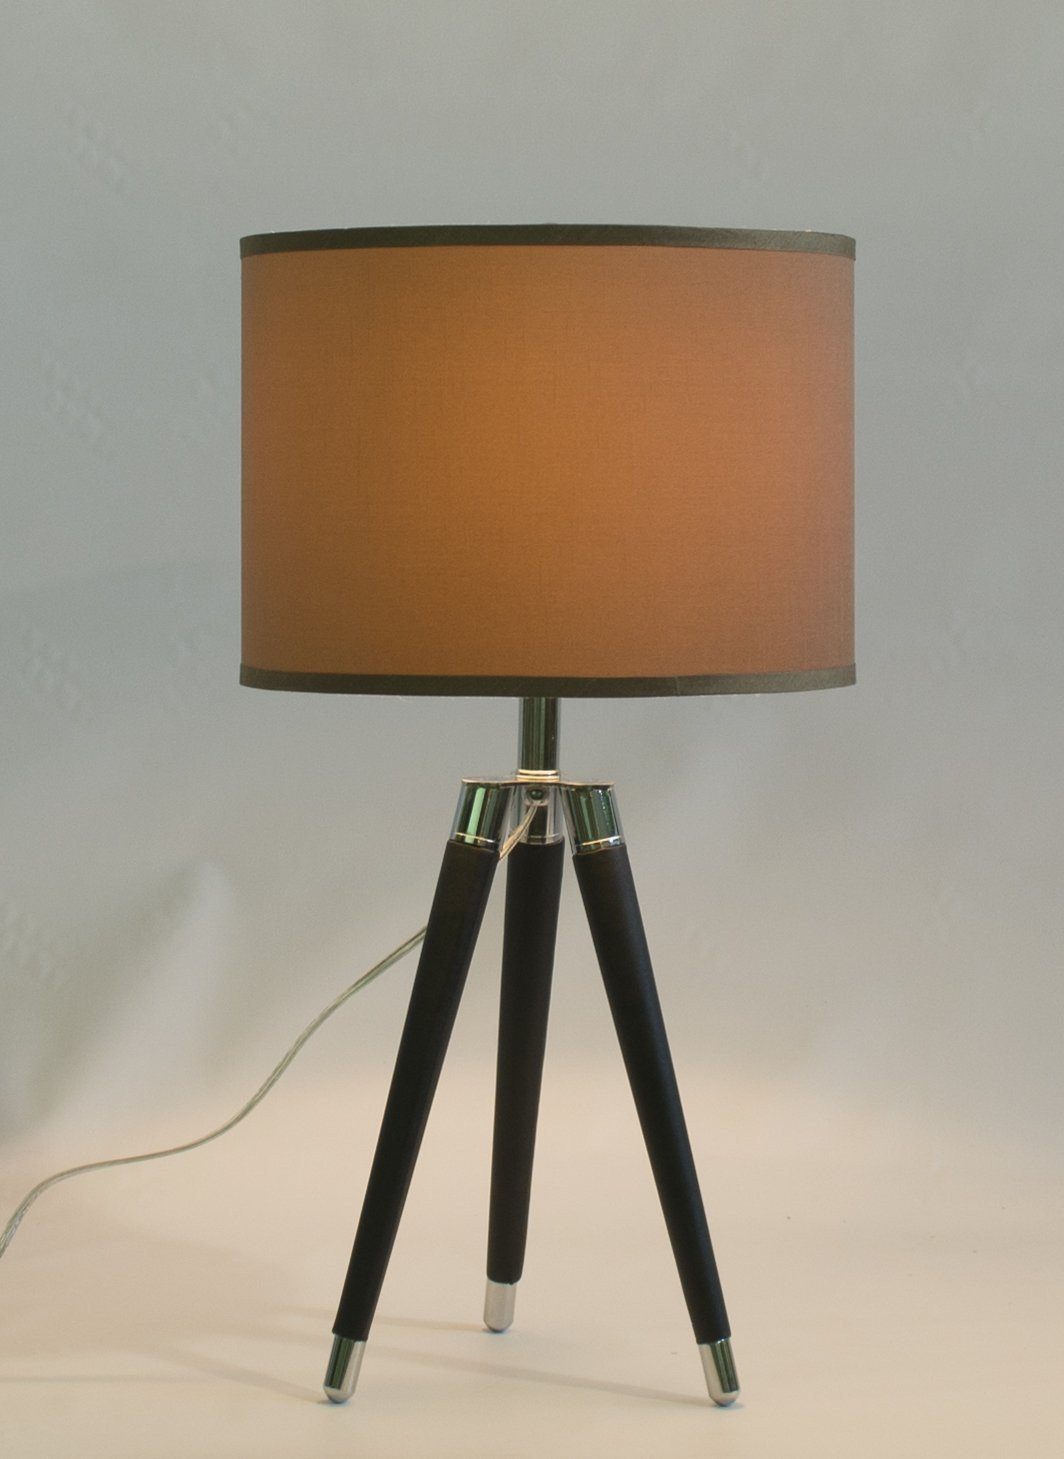 Black Mid Century Modern Tripod Leather & Chrome Table Lamp with 14-inch Taupe Drum Shade